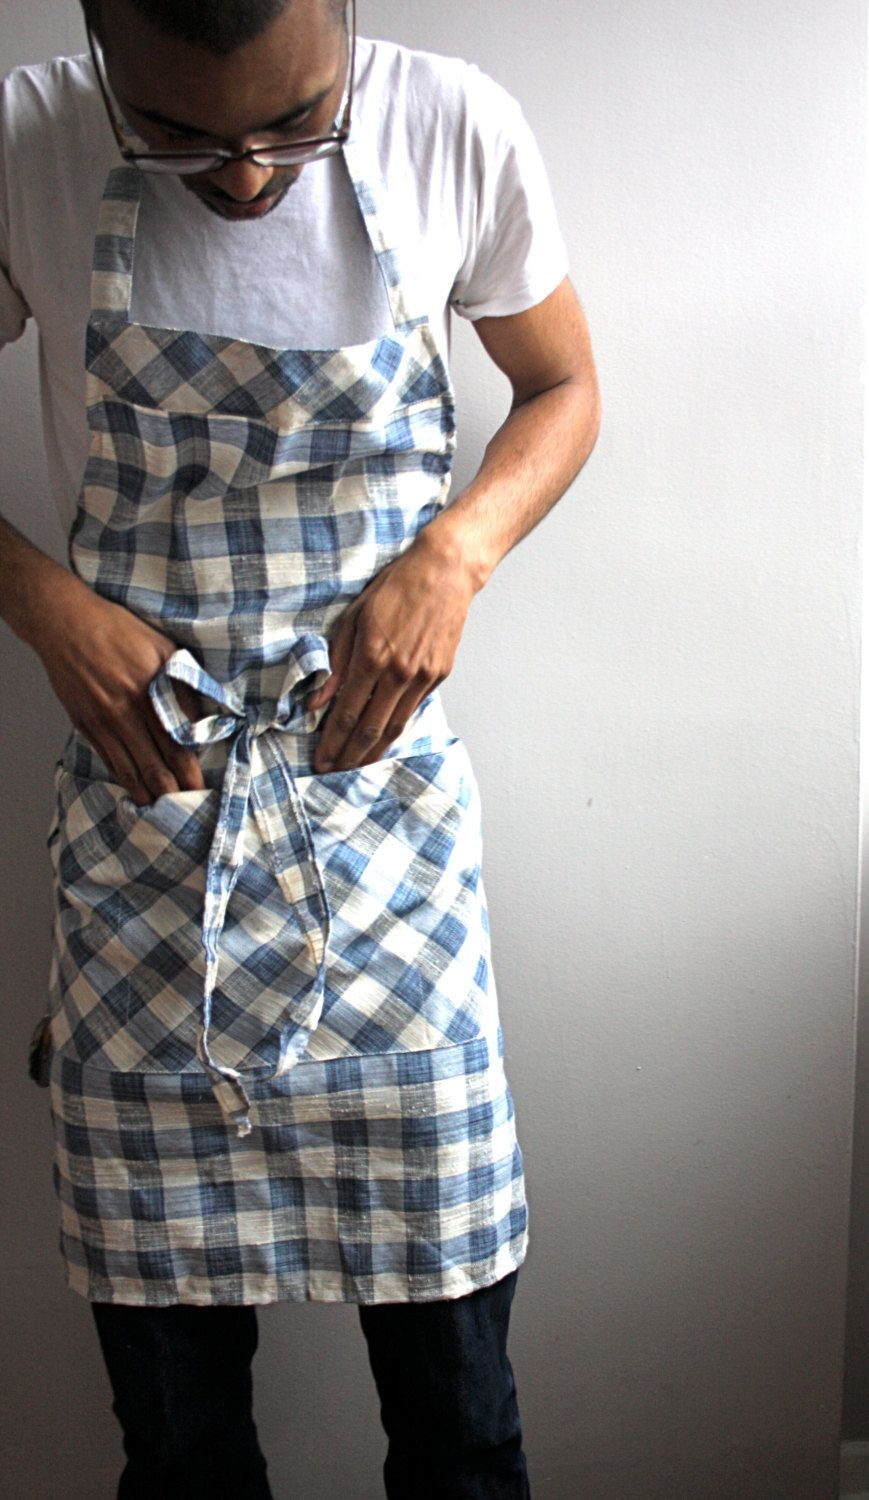 Mens apron, blue checkered, large apron, grilling apron, chefs apron.